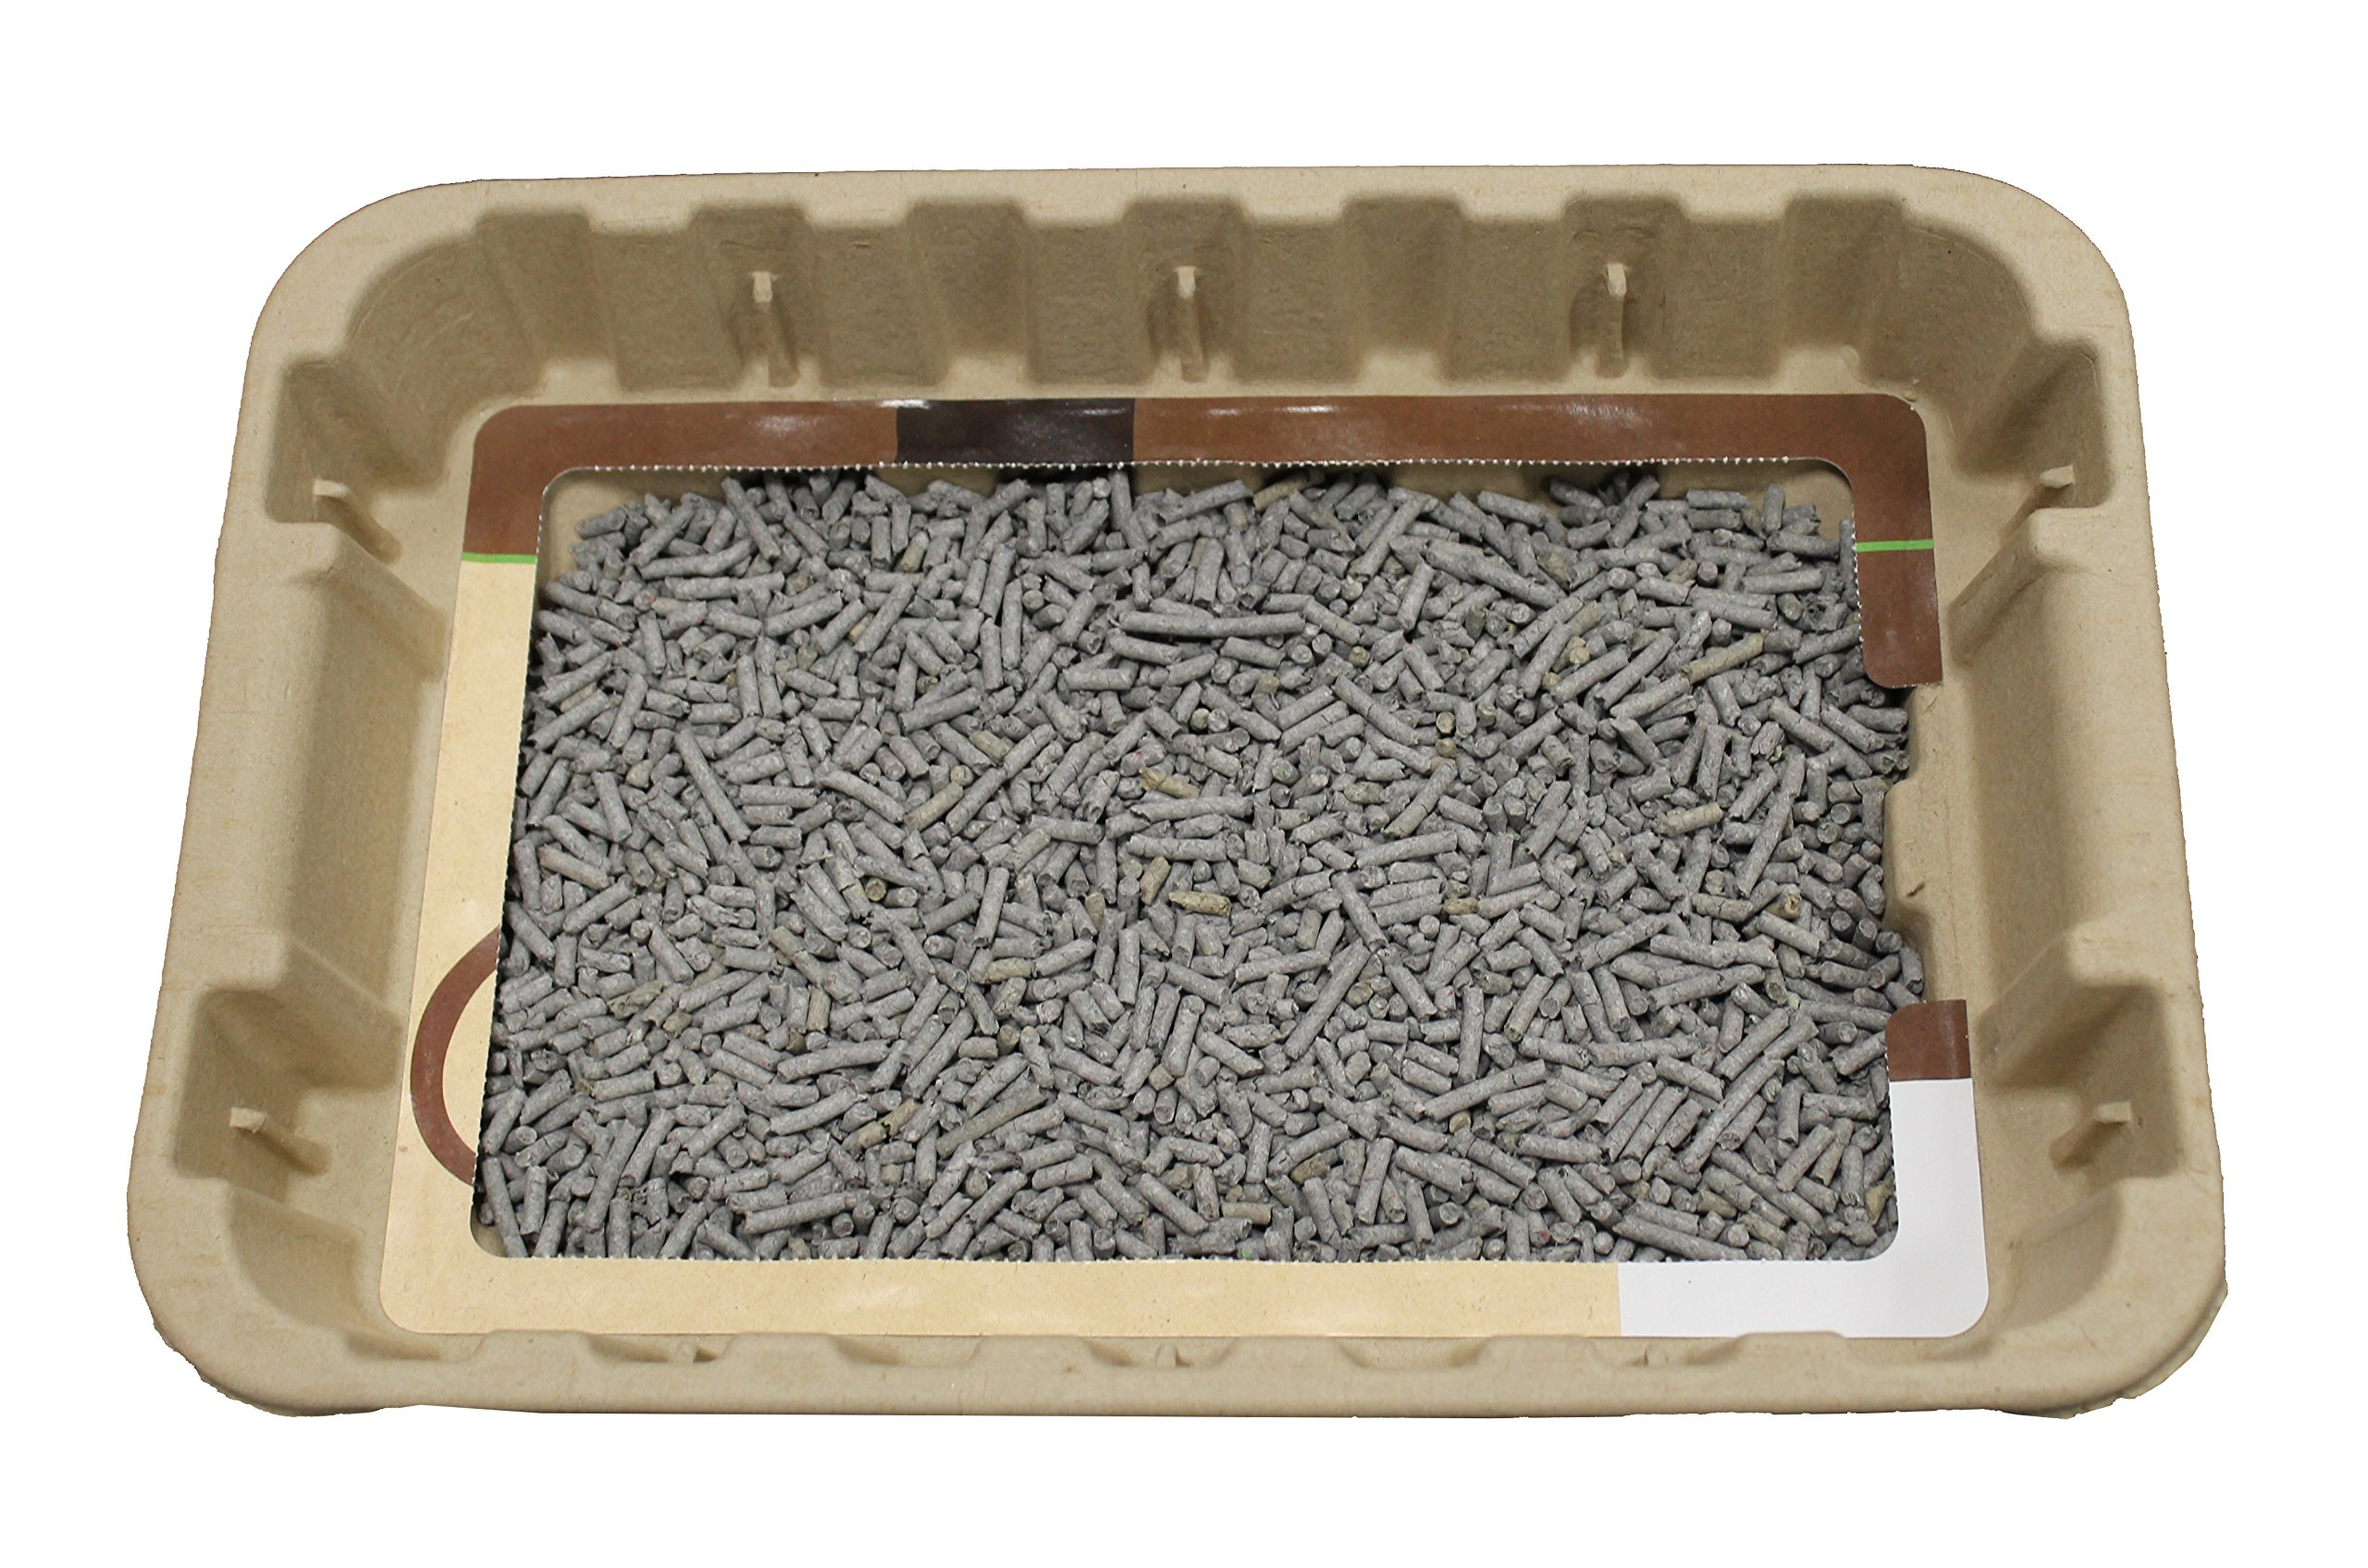 Disposable Cat Litter Boxes, Pre-Filled with 100% Recycled Paper Litter Pellets- 5 Pack of Trays- Includes Litter. Eco Friendly! Simply Peel Off Perforated Lid, Use, Dispose of Entire Tray! 3